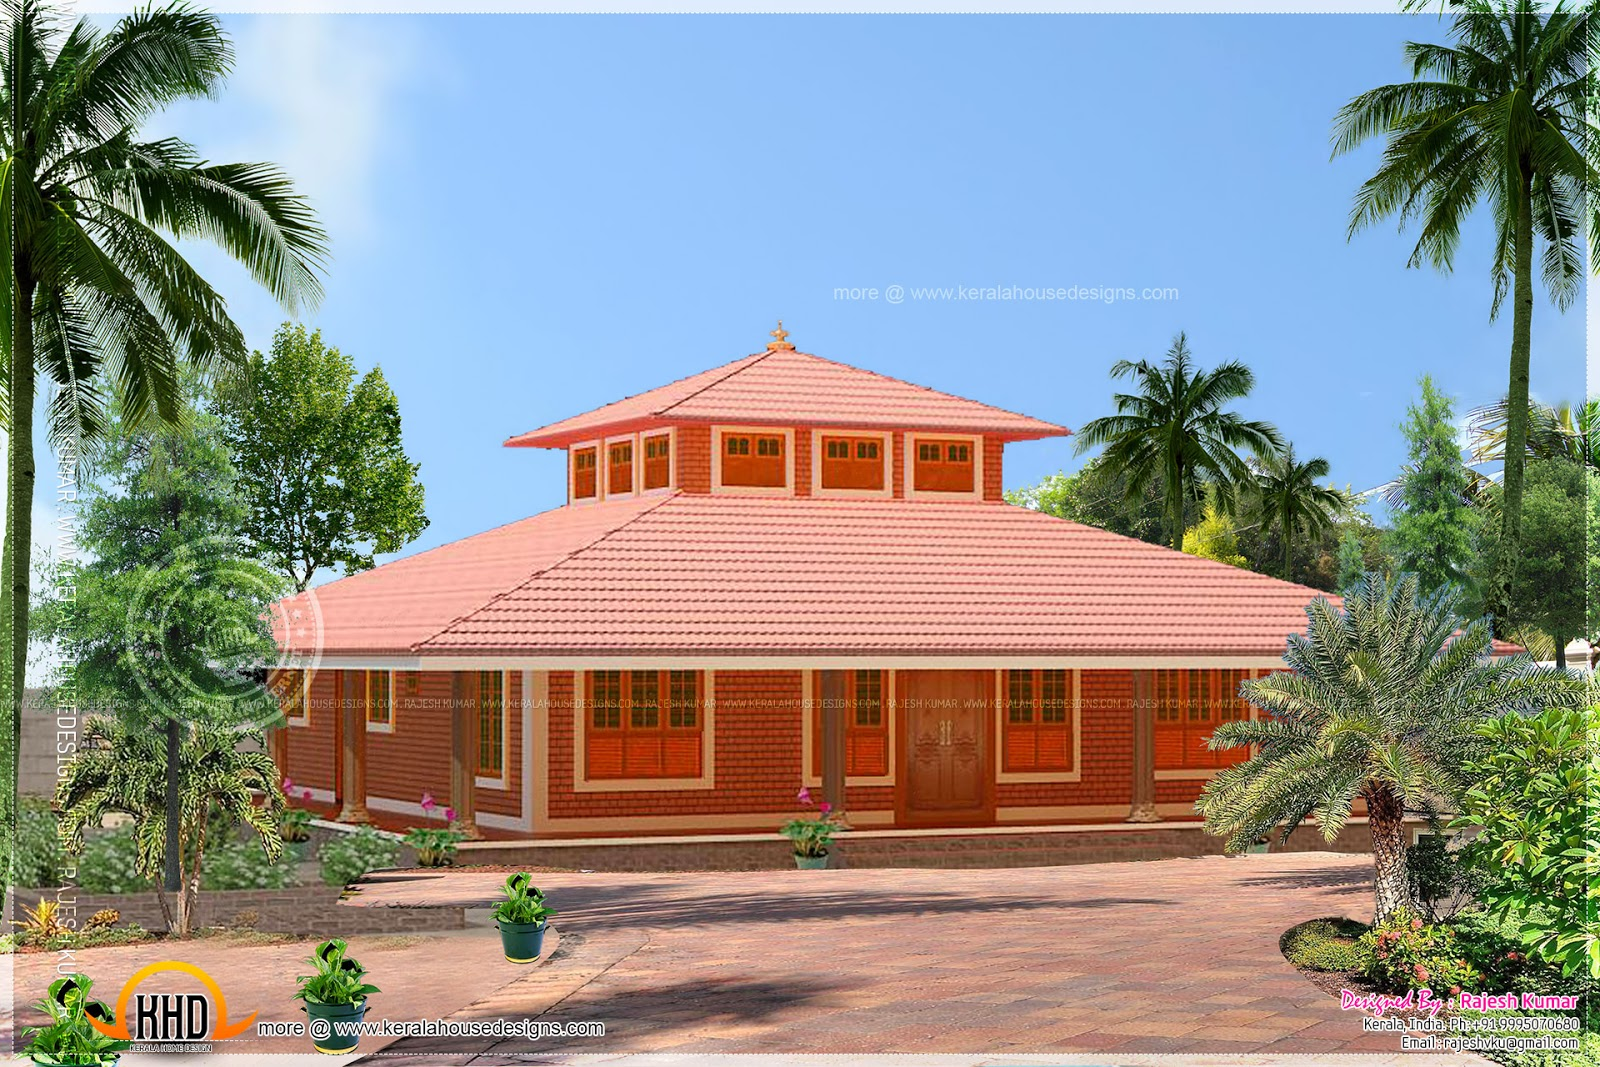 Single storied low cost brick home design indian house plans Low cost home design in india